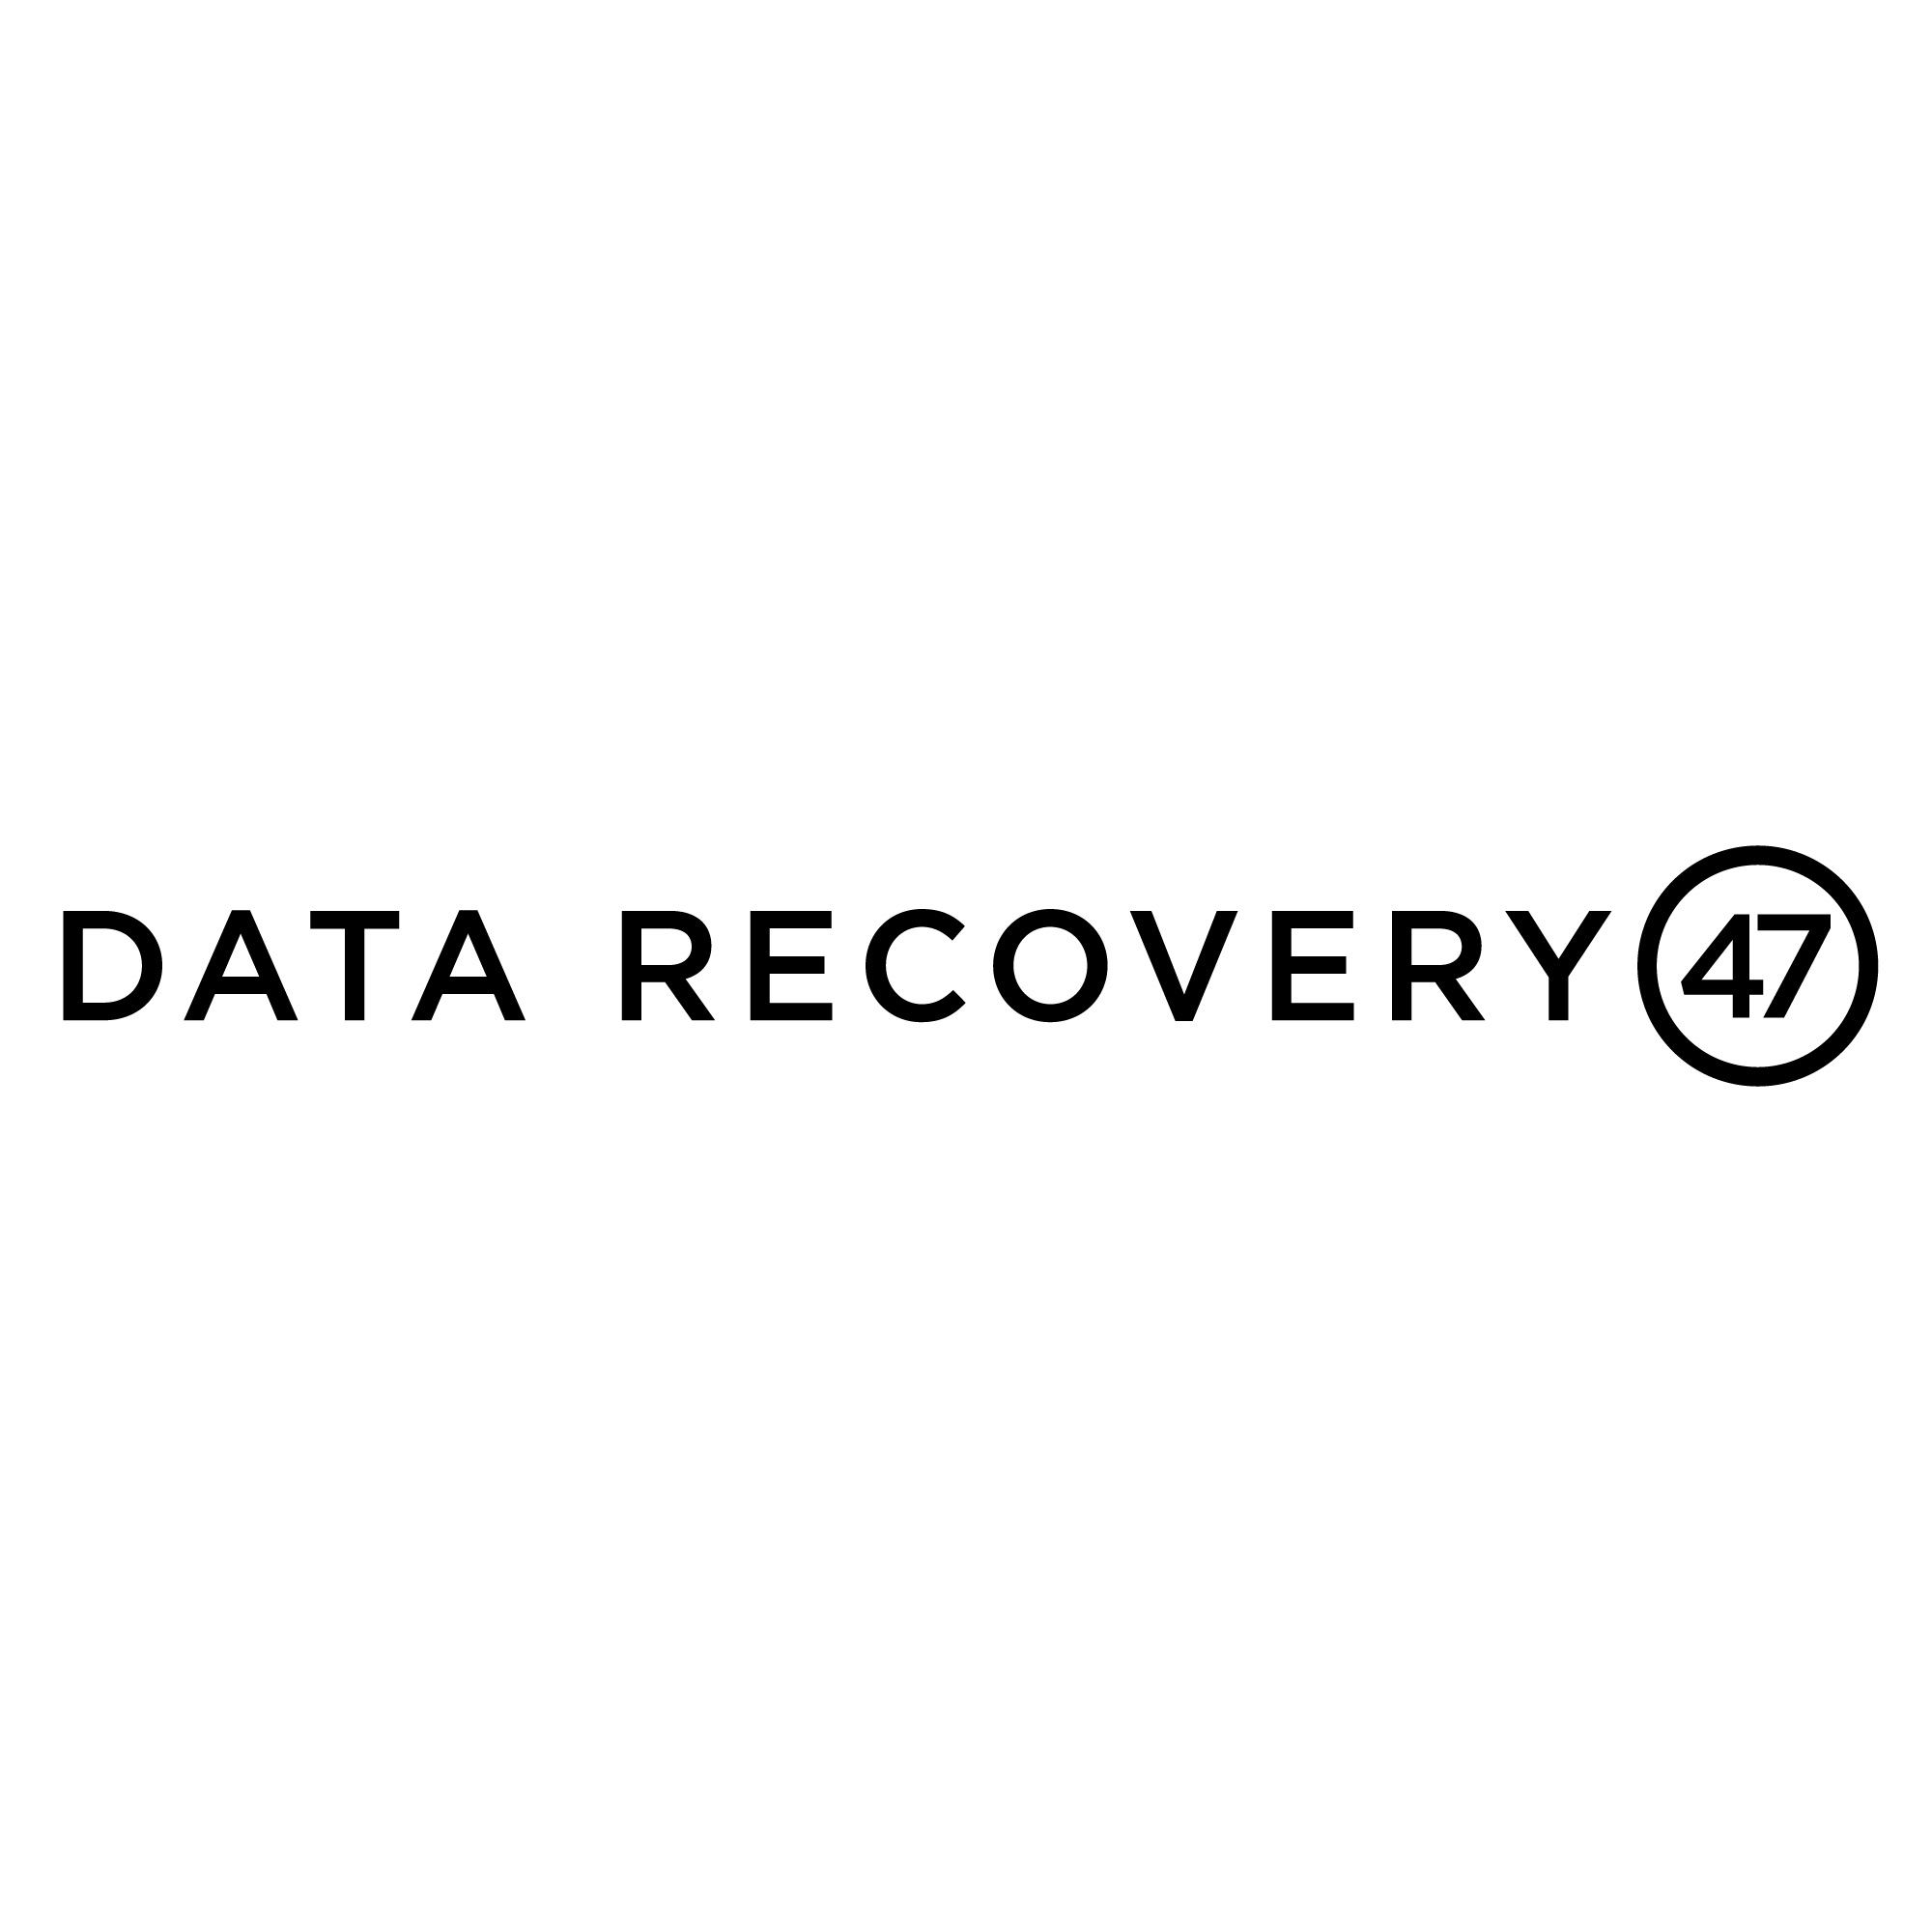 data recovery service Freelance Photographers Nightmare, data recovery service needed DataRecovery logo